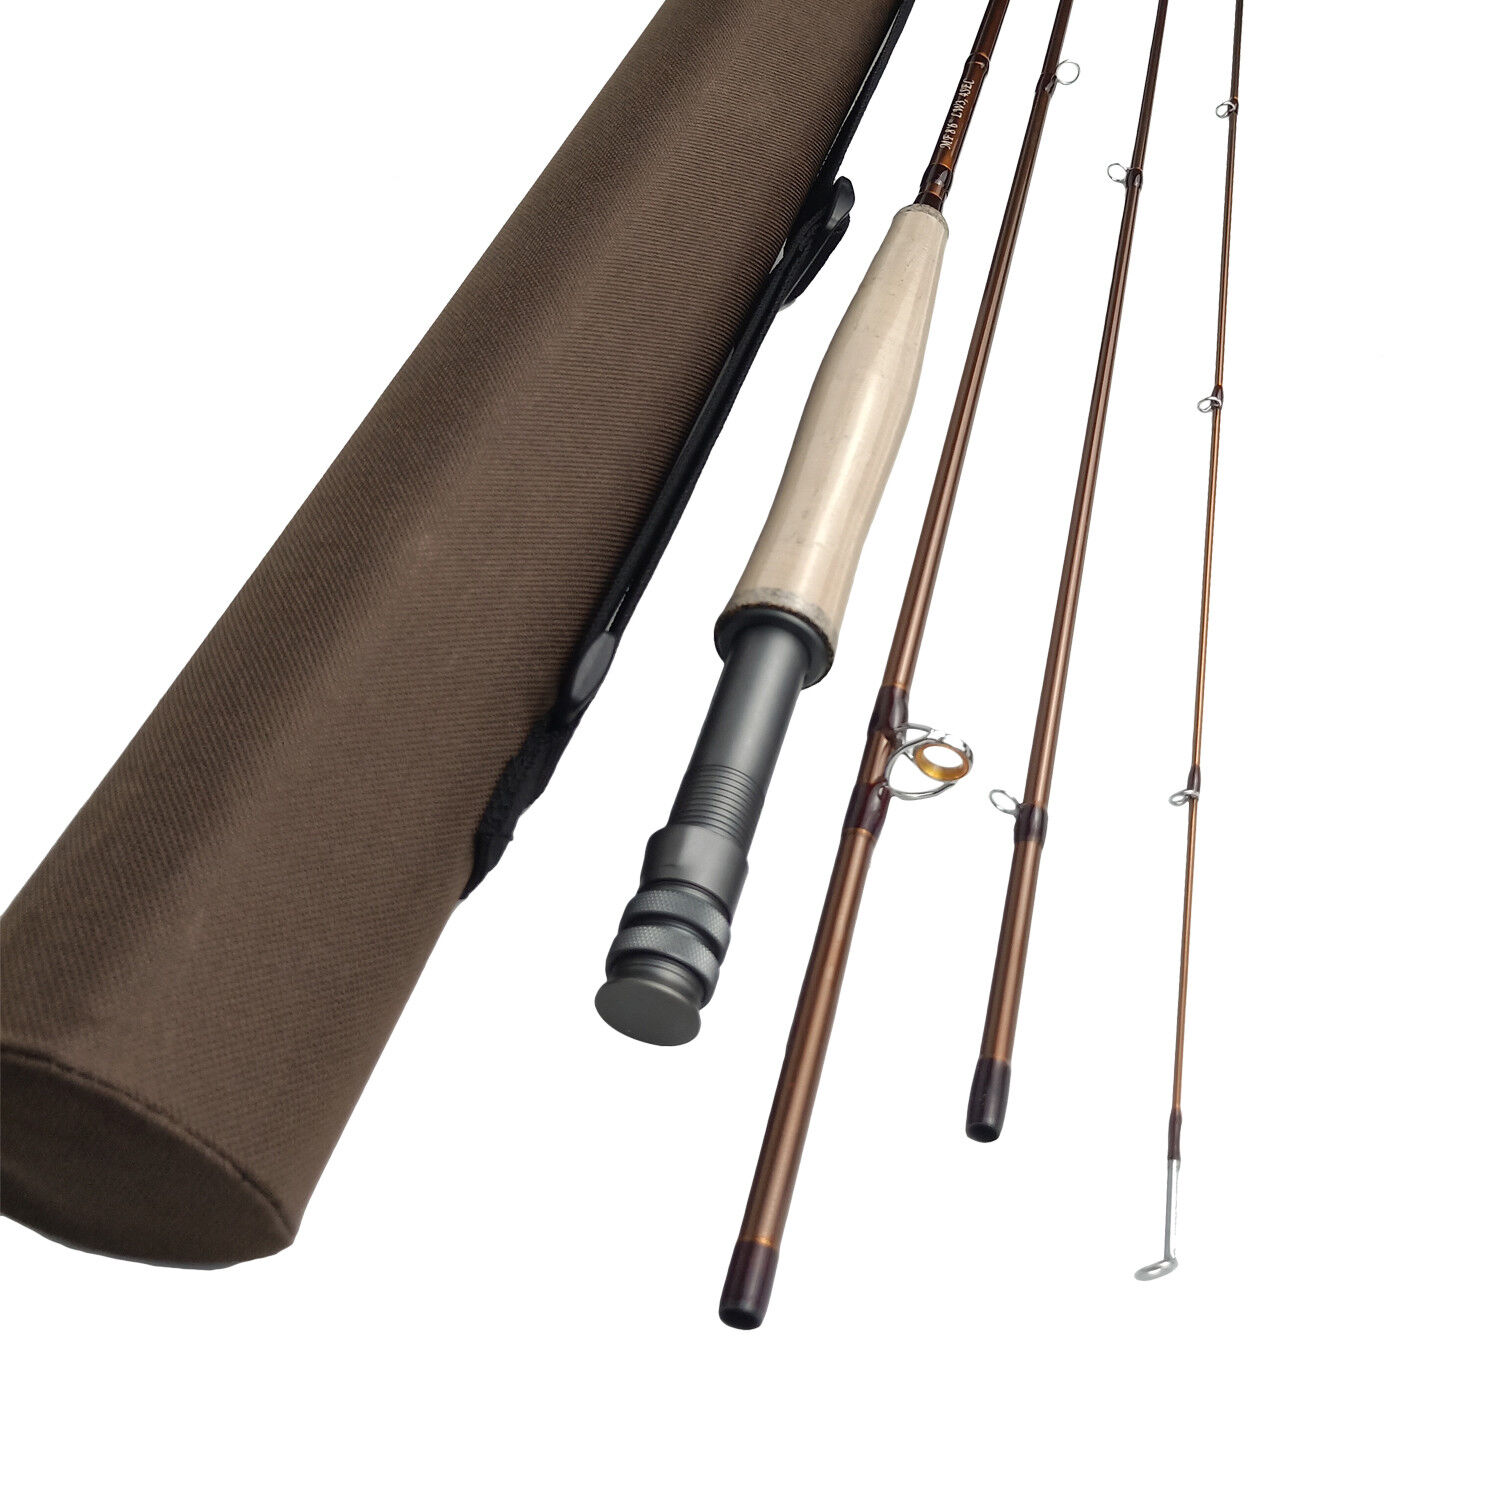 Special Sale Aventik 8'6'' LW3, 9'0'' LW5 Medium Fast Action Freshwater Fly Rods